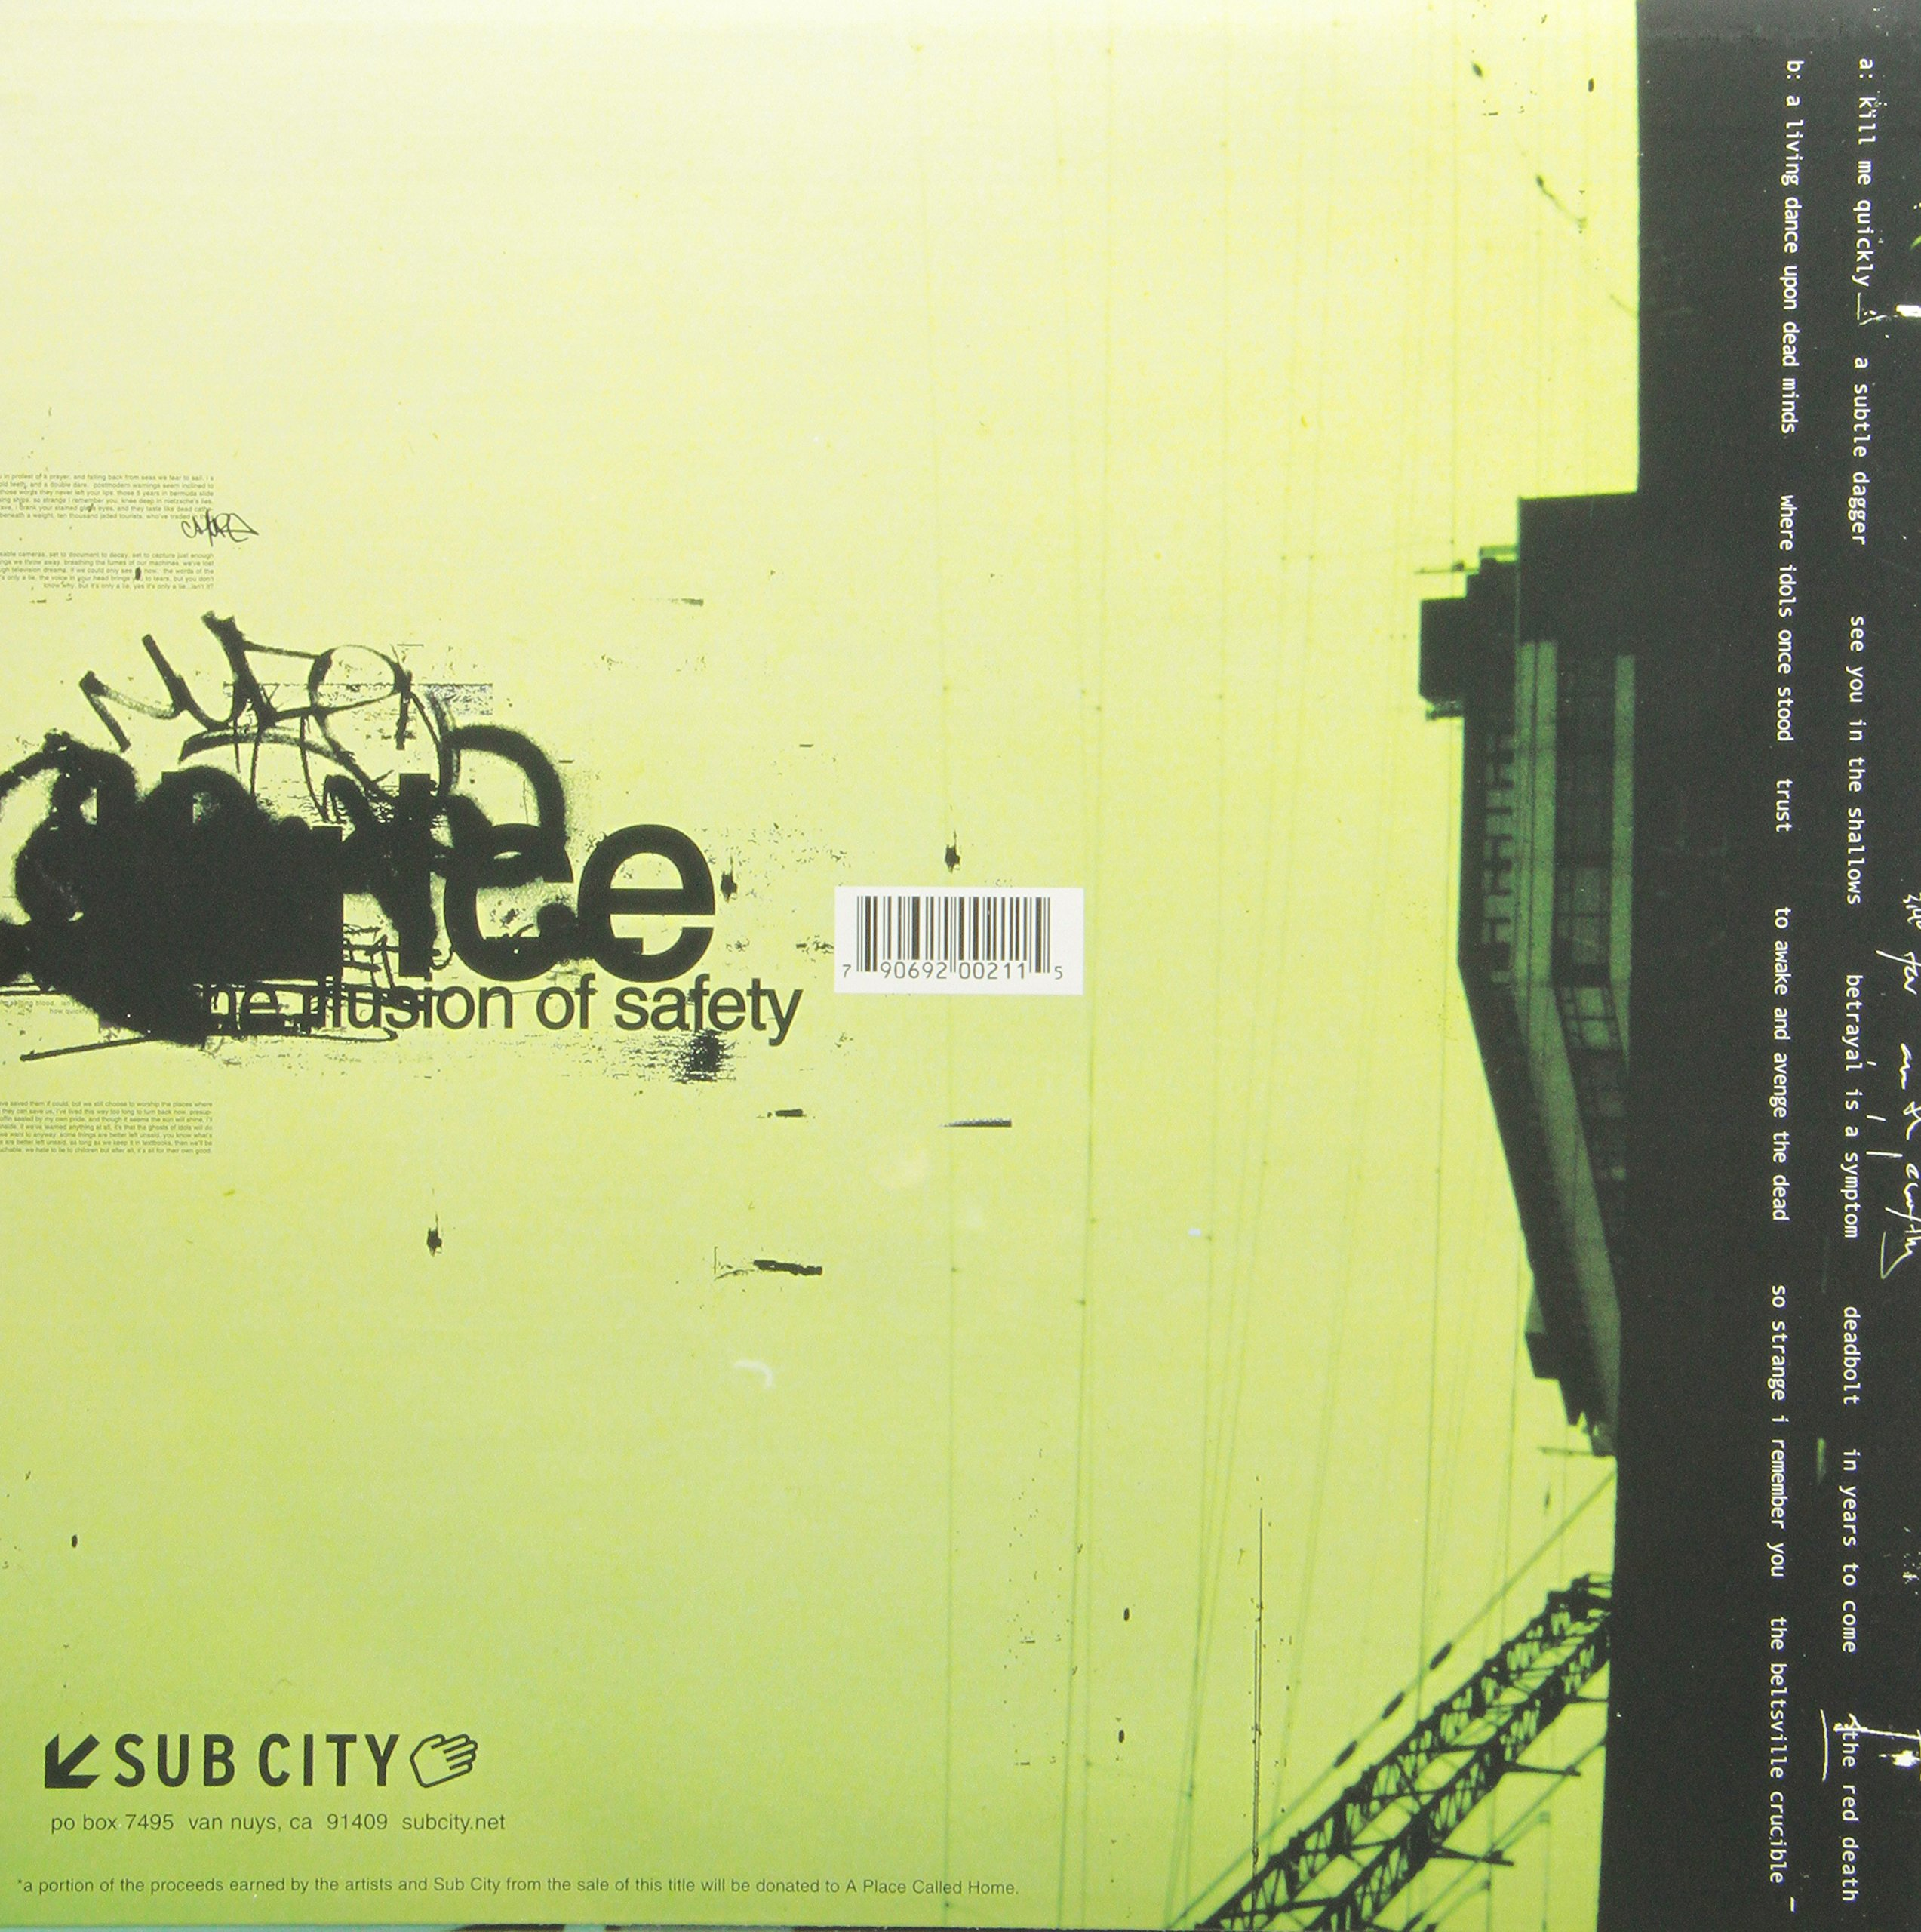 ILLUSION OF SAFETY, THE [Vinyl] by Sub City Record (Image #1)